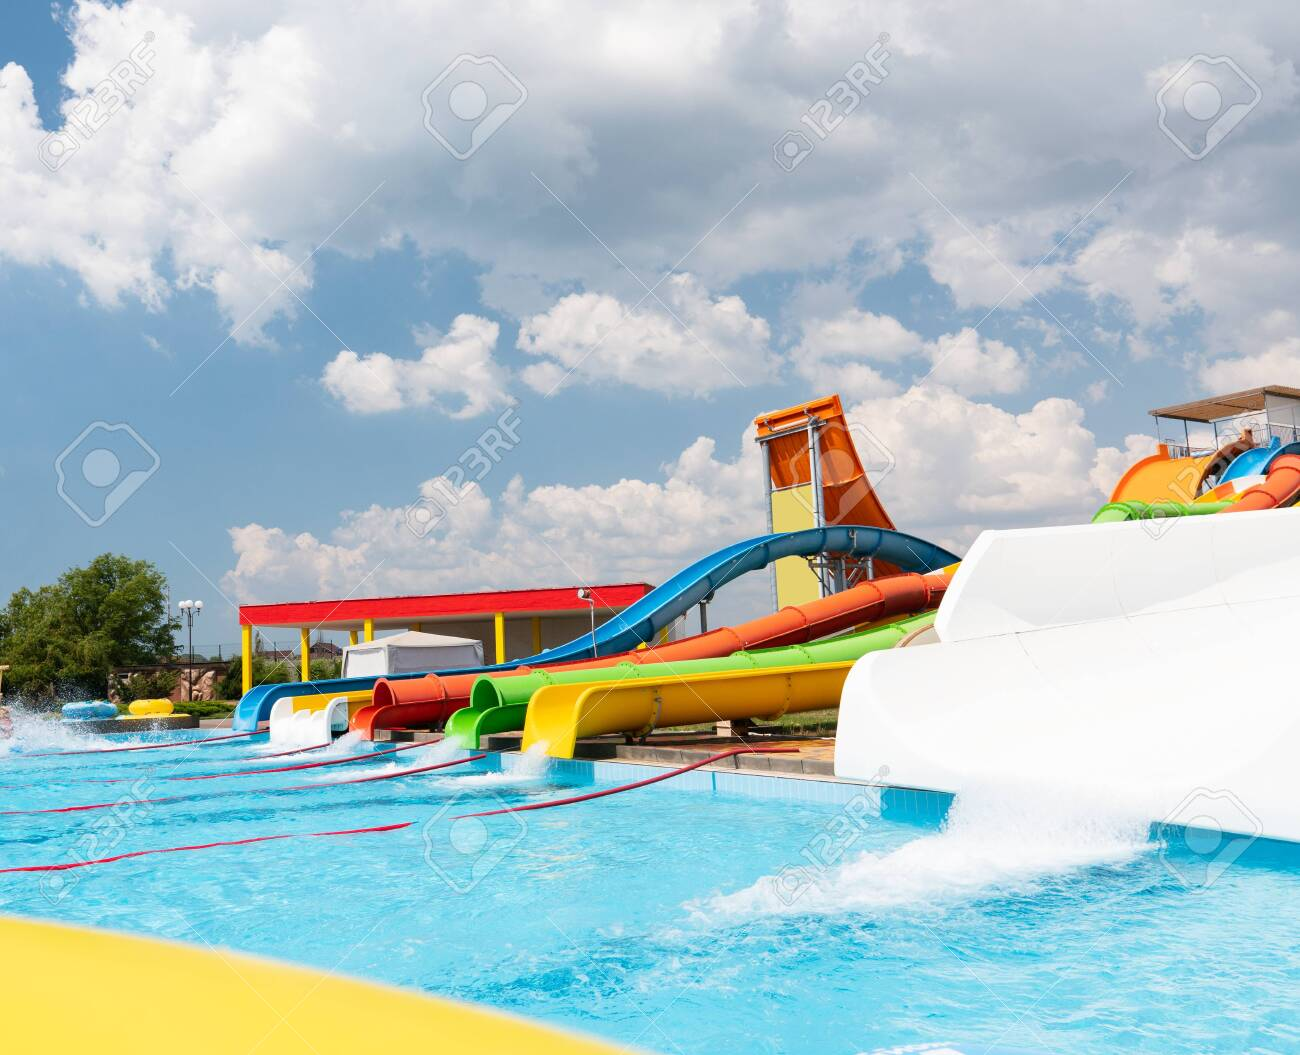 Outdoor water park. Multi-colored slides and pools. No people. - 136324643